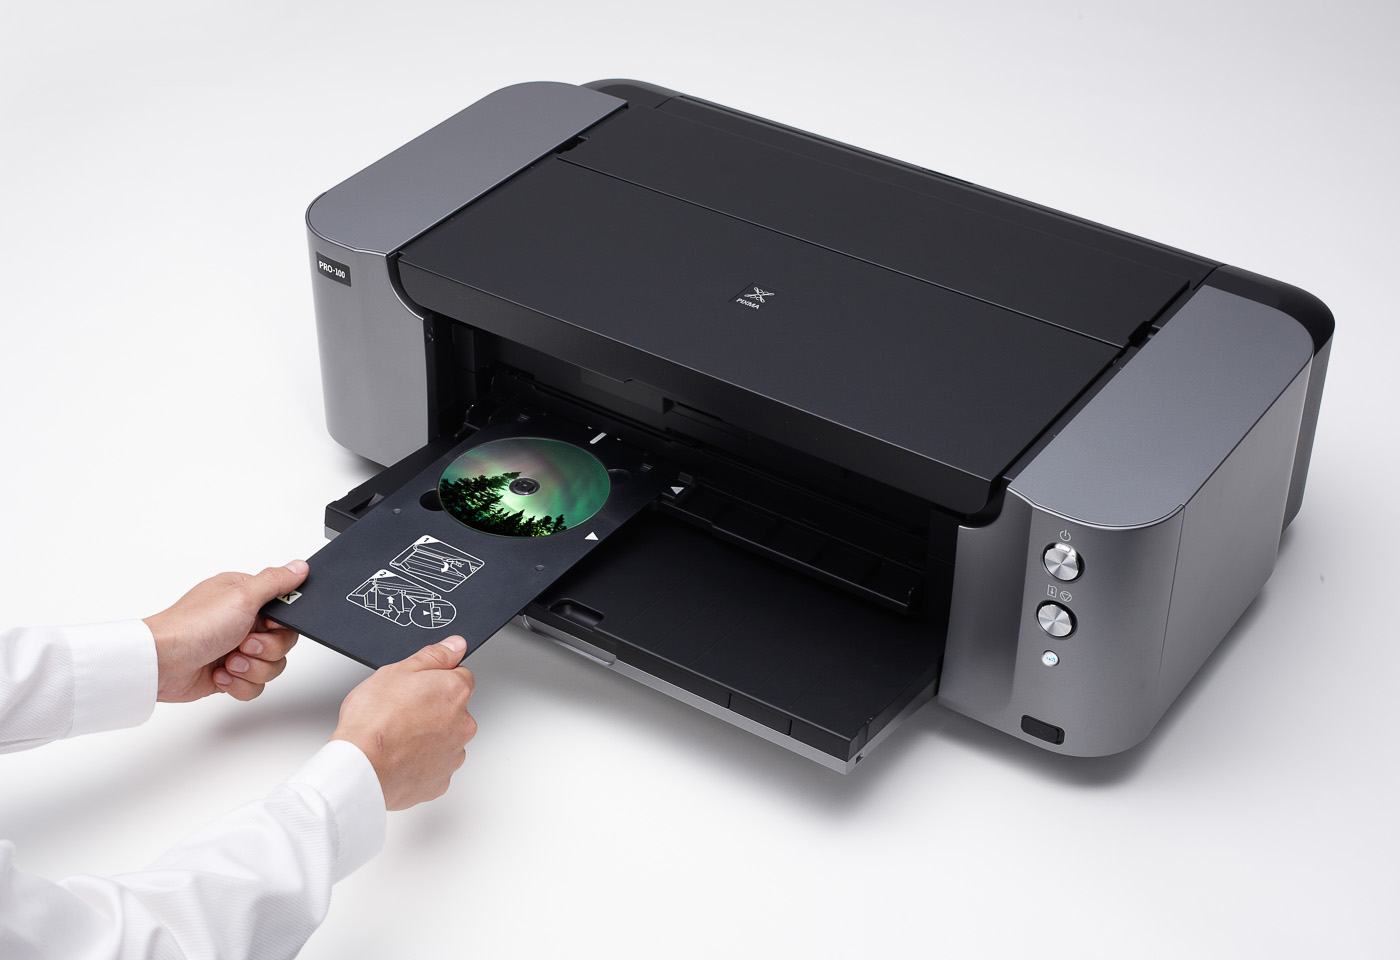 pixma pro 100 printing to a CD